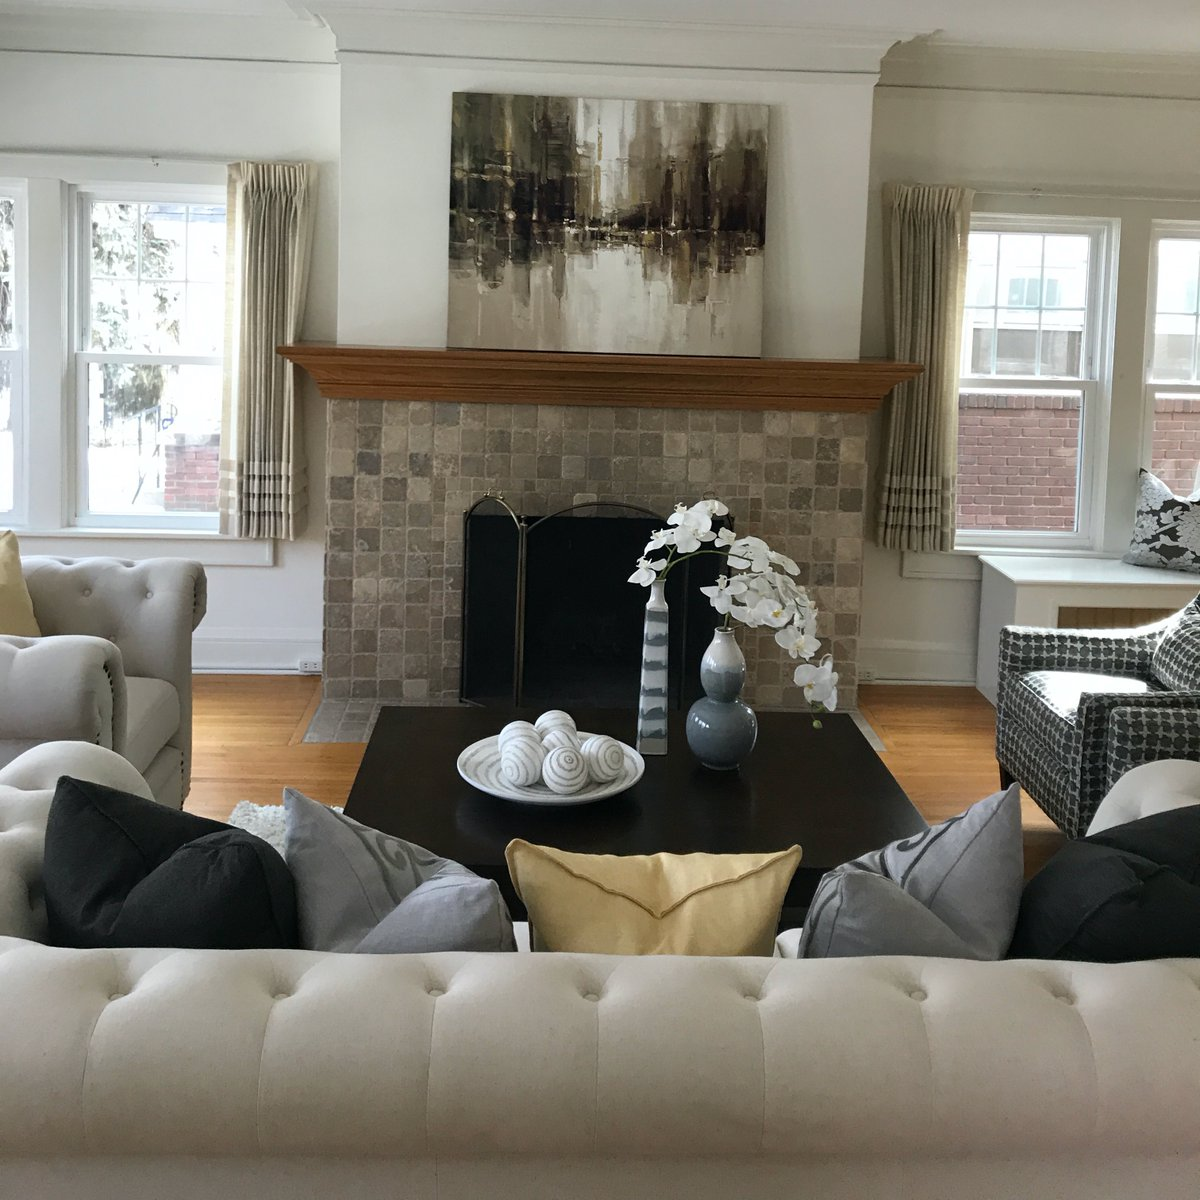 #cozy living in #Minneapolis.  #charming home built in 1922!  Close to Lake of the isles. #ForSale    2132 #Penn Ave. #Minnesota Home Staging helps to sell properties!   Contact us for details!   #homedecor #familytime #StayHomepic.twitter.com/pk8G4Bc2g0